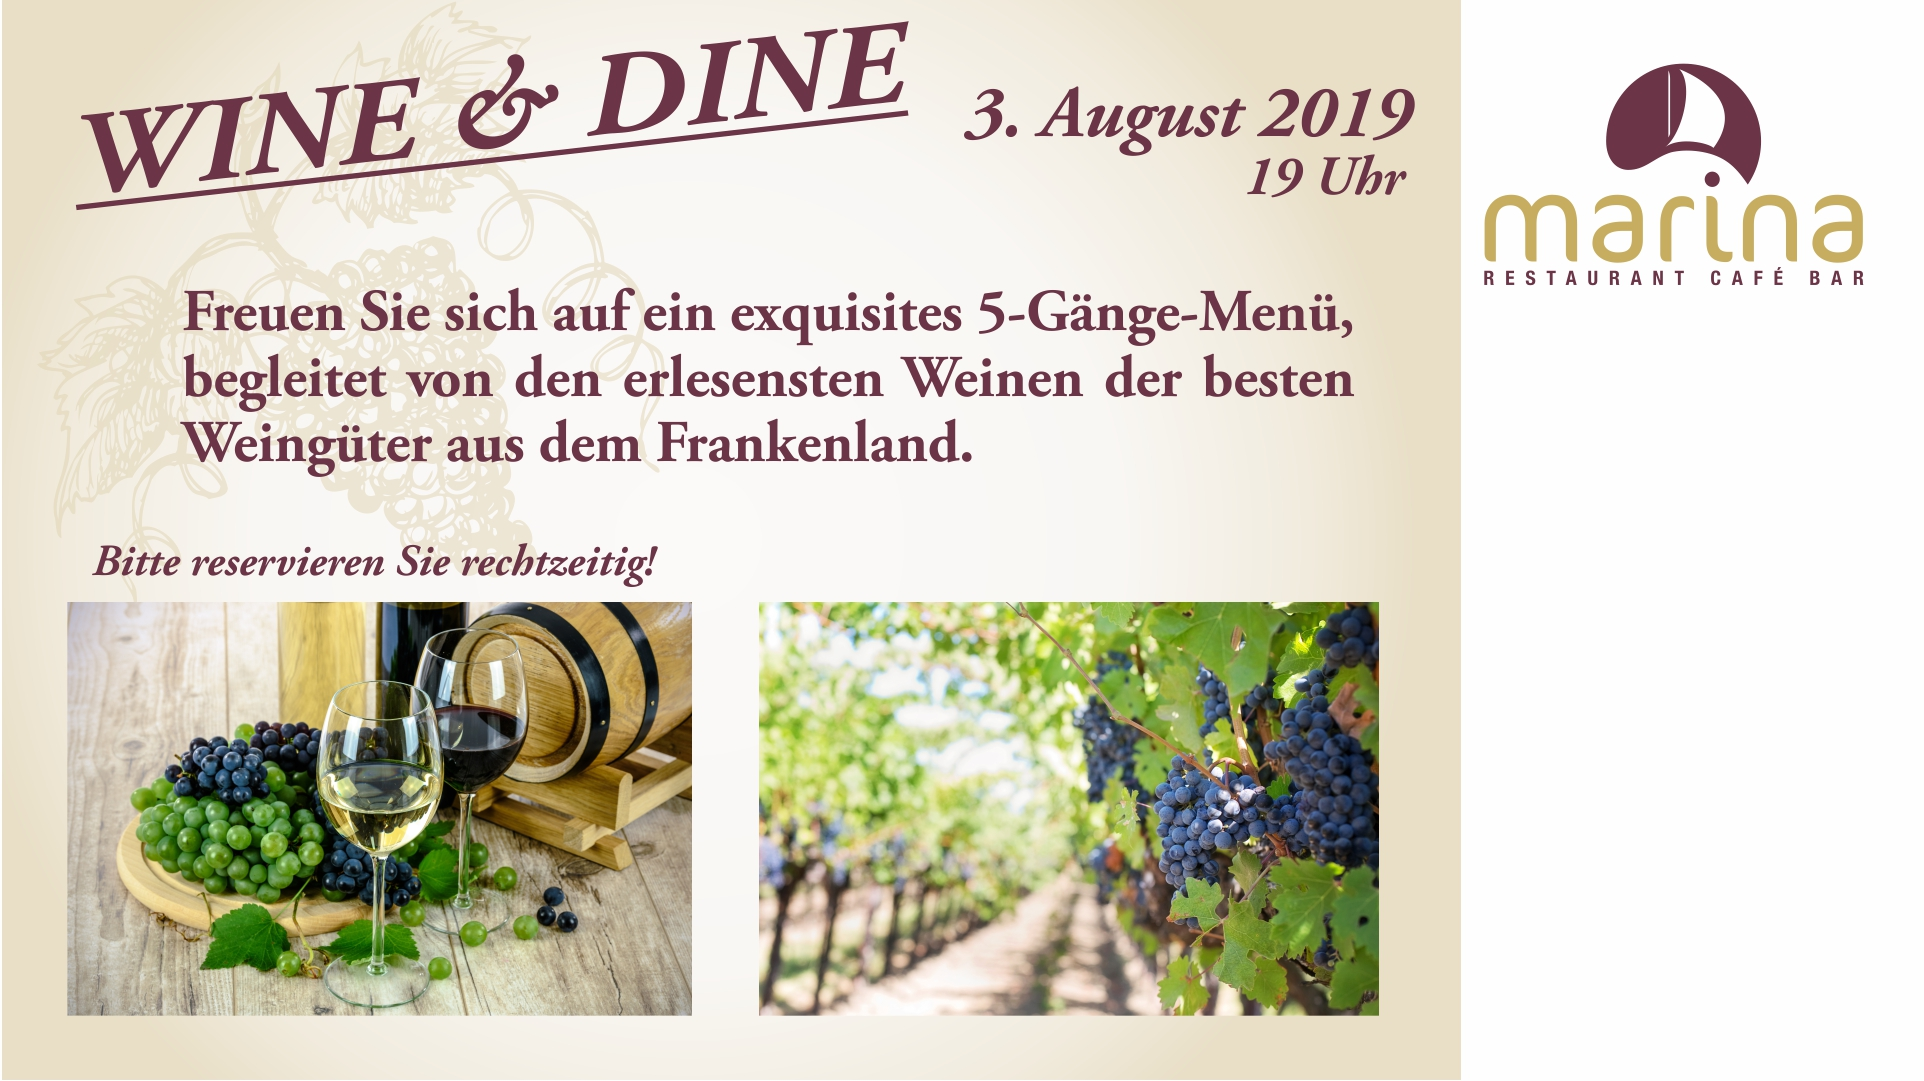 WINE & DINE am 3. August um 19 Uhr